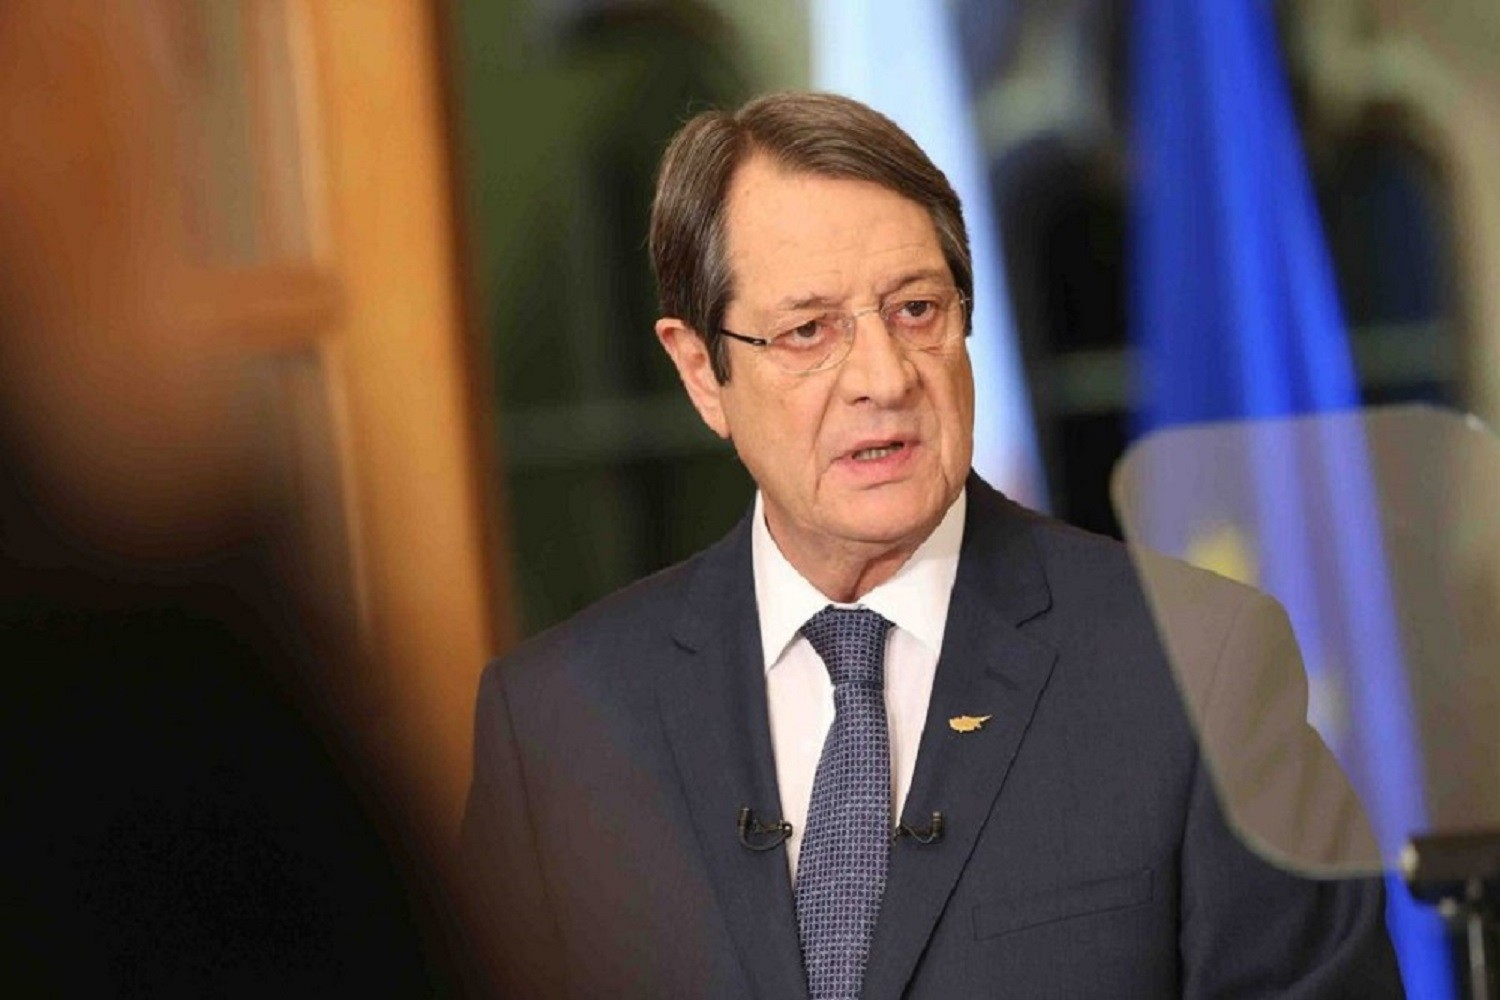 Anastasiades expresses his position on the Cyprus problem to the Kyrenians